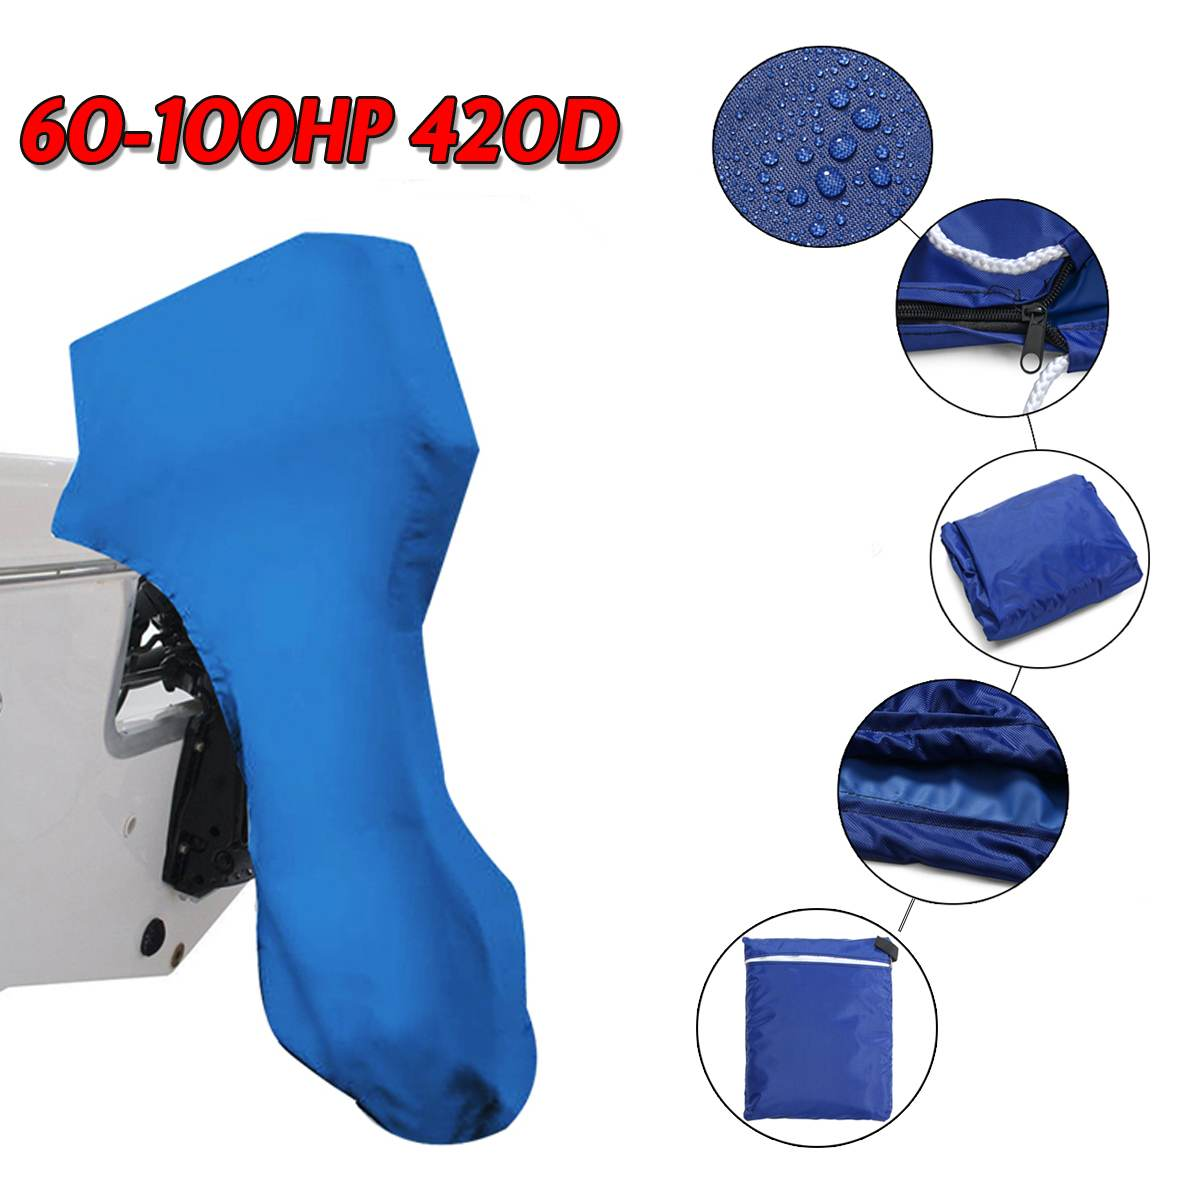 420D 60 100HP Boat Full Outboard Engine Motor Cover Waterproof Blue For 60 100HP|Boat Cover| |  - title=